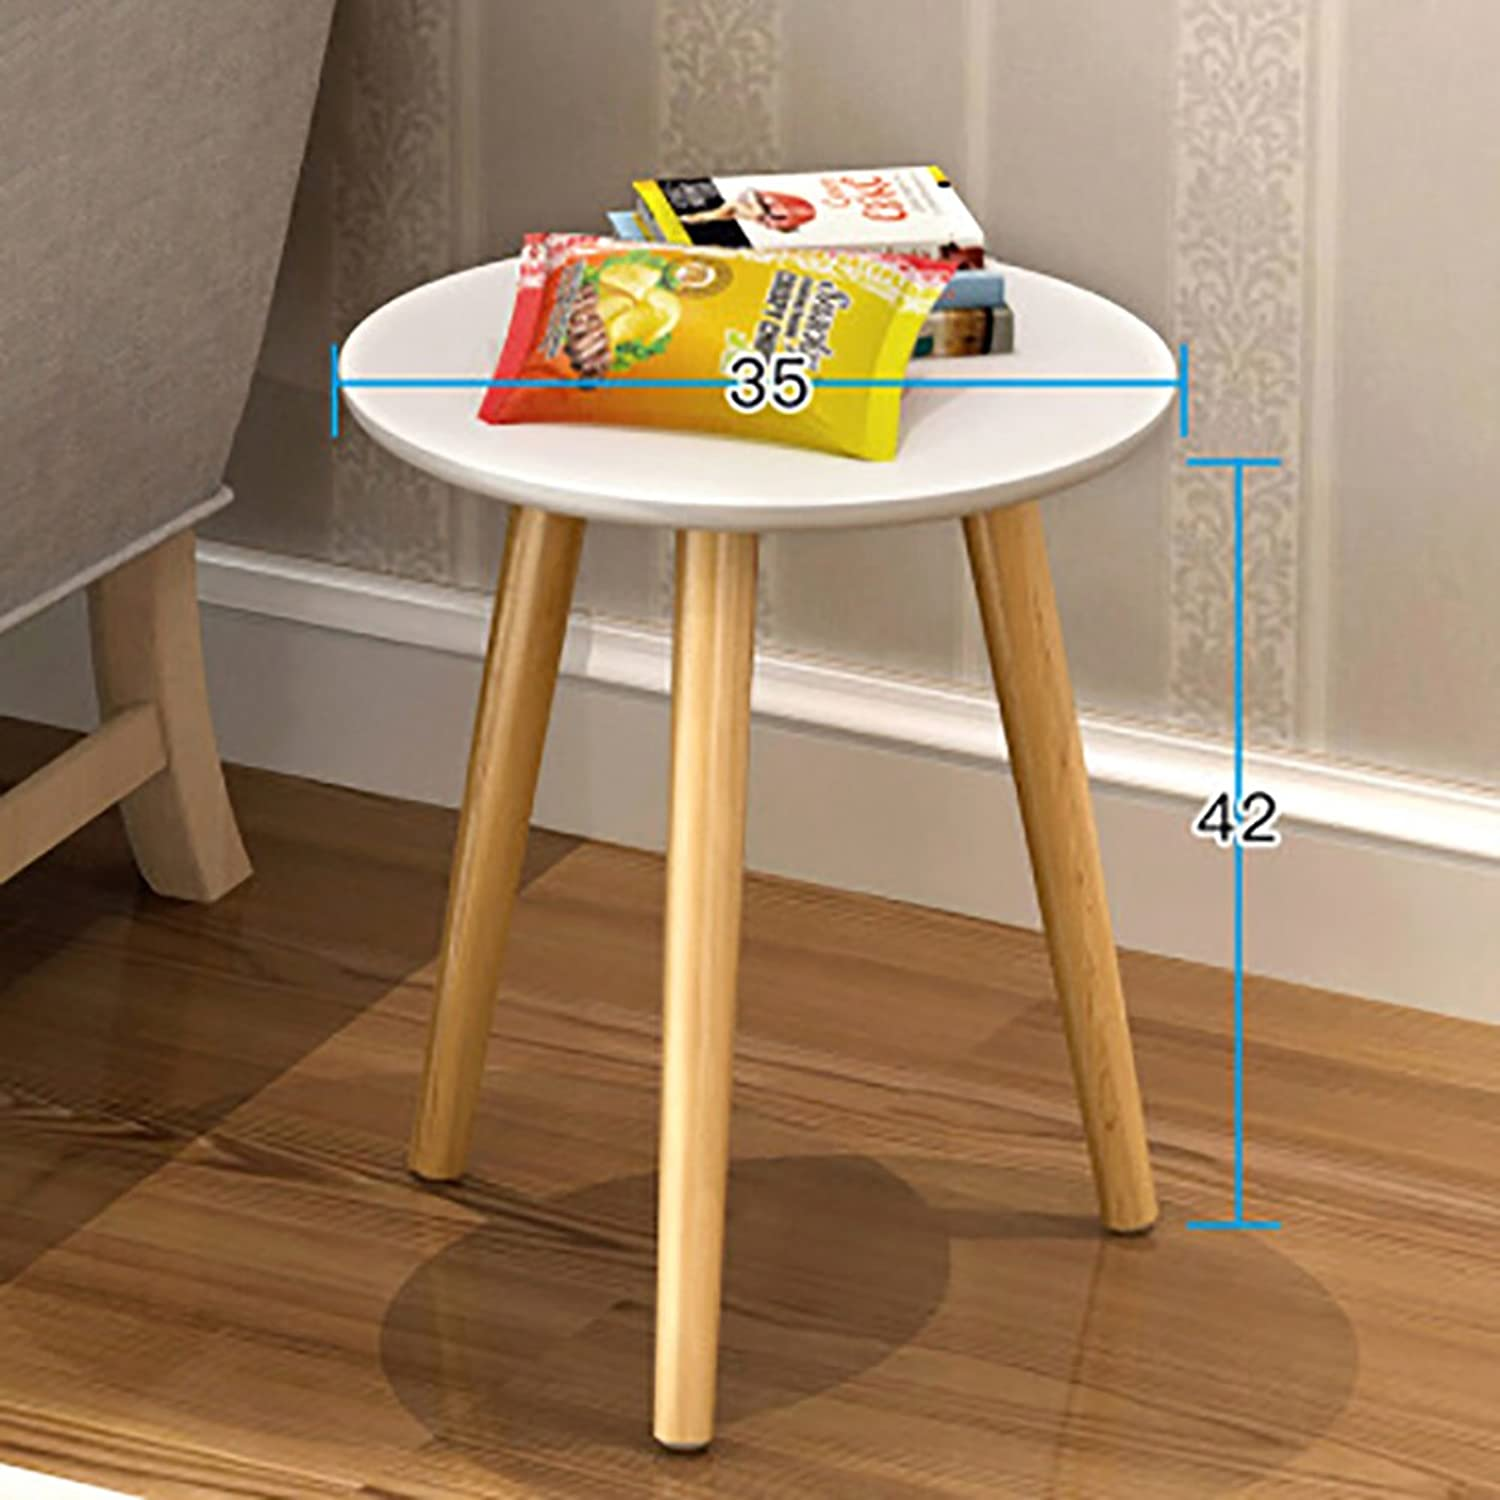 Solid Wood Waterproof Side Table, Round Living Room Sofa Table Coffee Table Bedroom Night Table Vintage Telephone Table-White 35x42cm